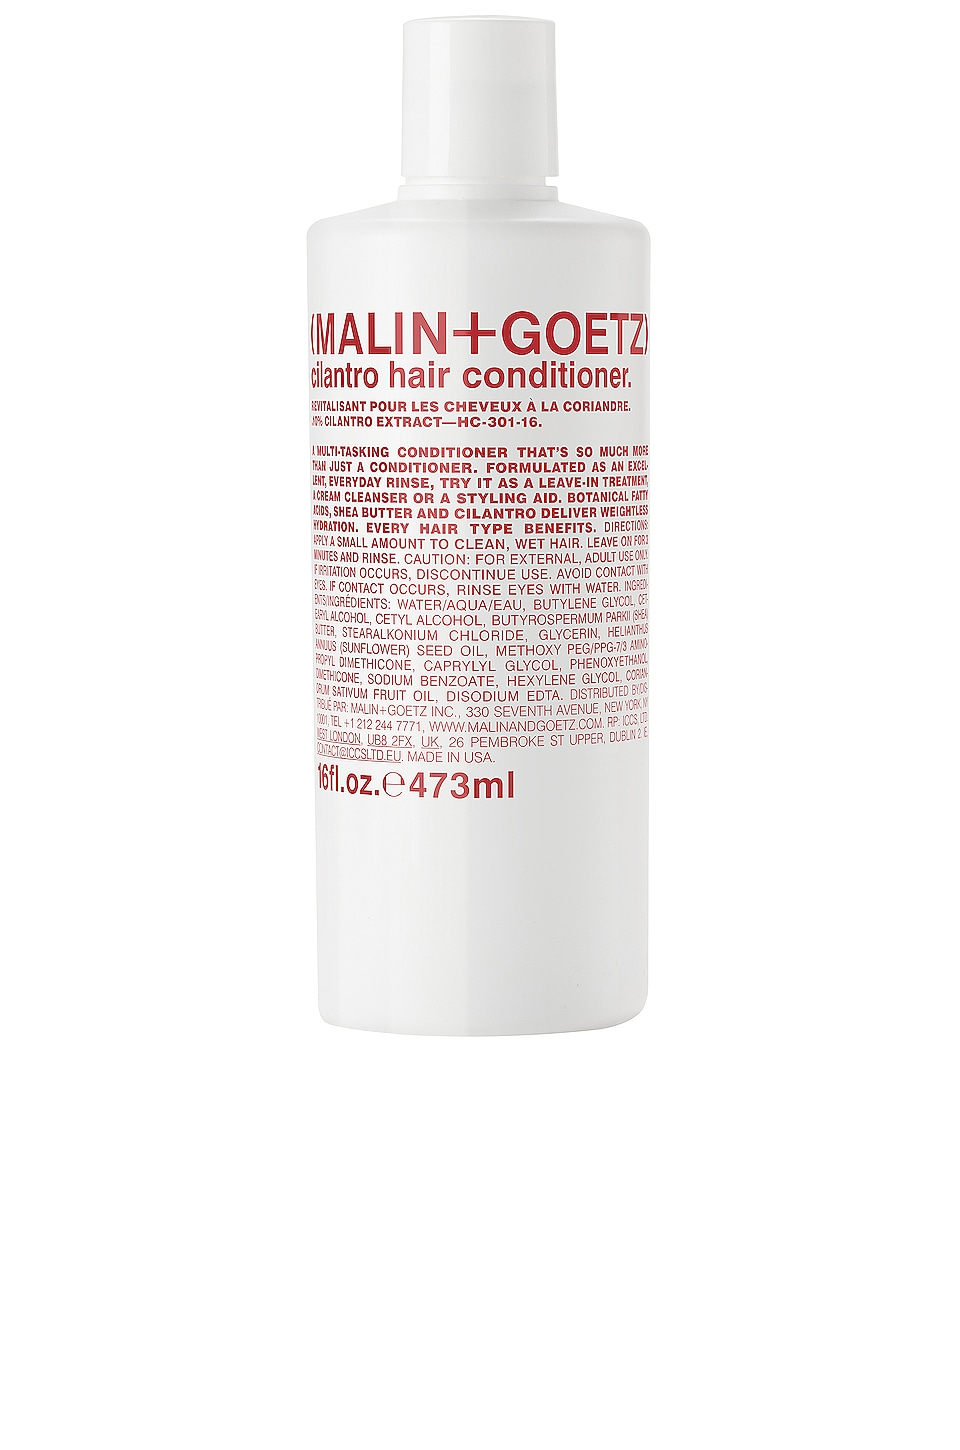 MALIN+GOETZ cilantro hair conditioner +